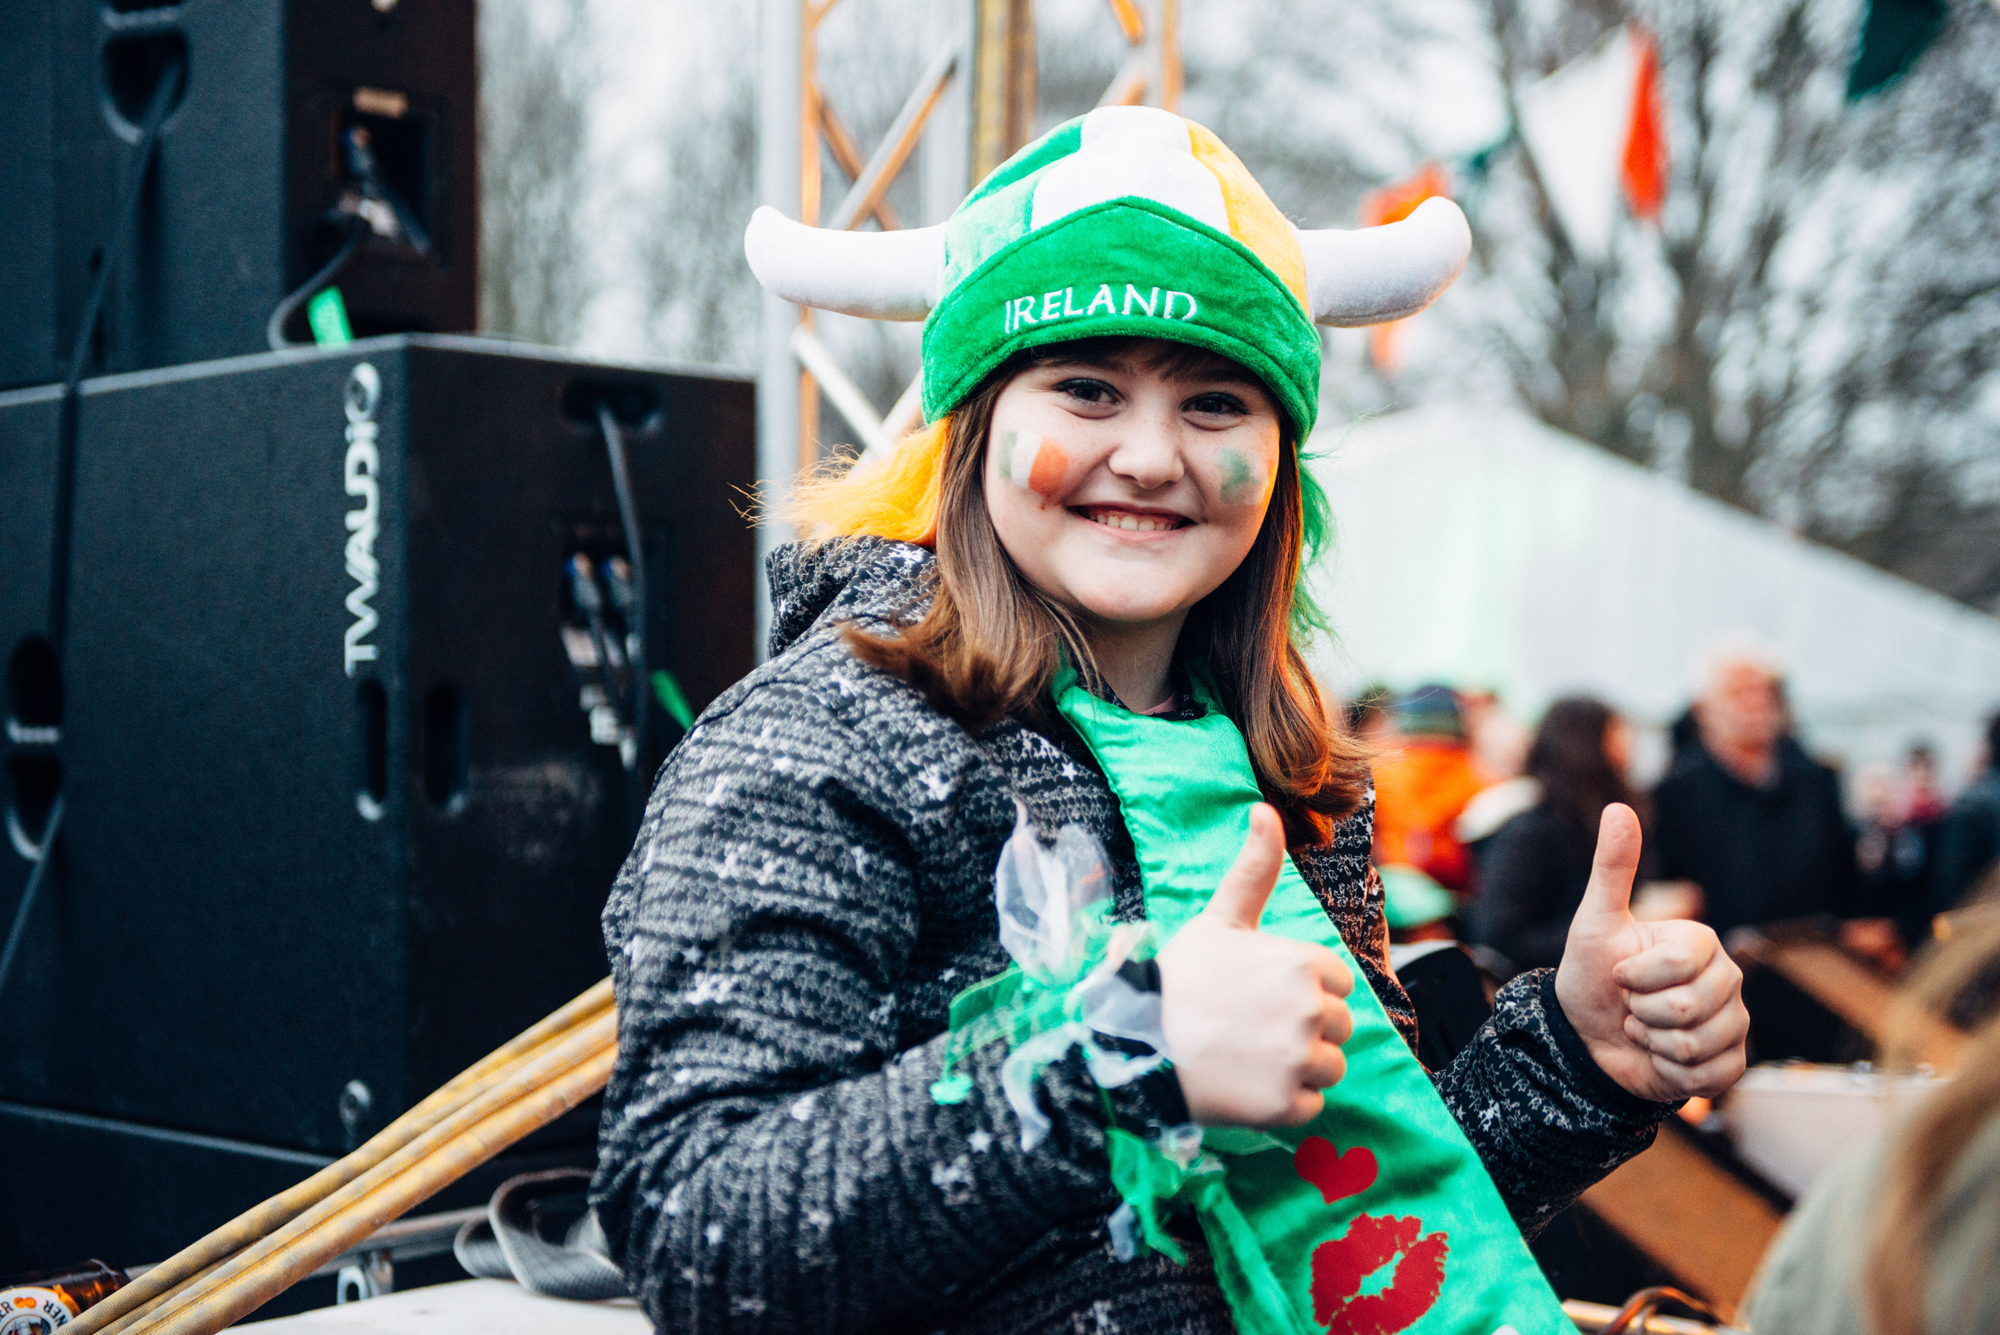 st-patricks-day-berlin-©-camille-blake-18.jpg